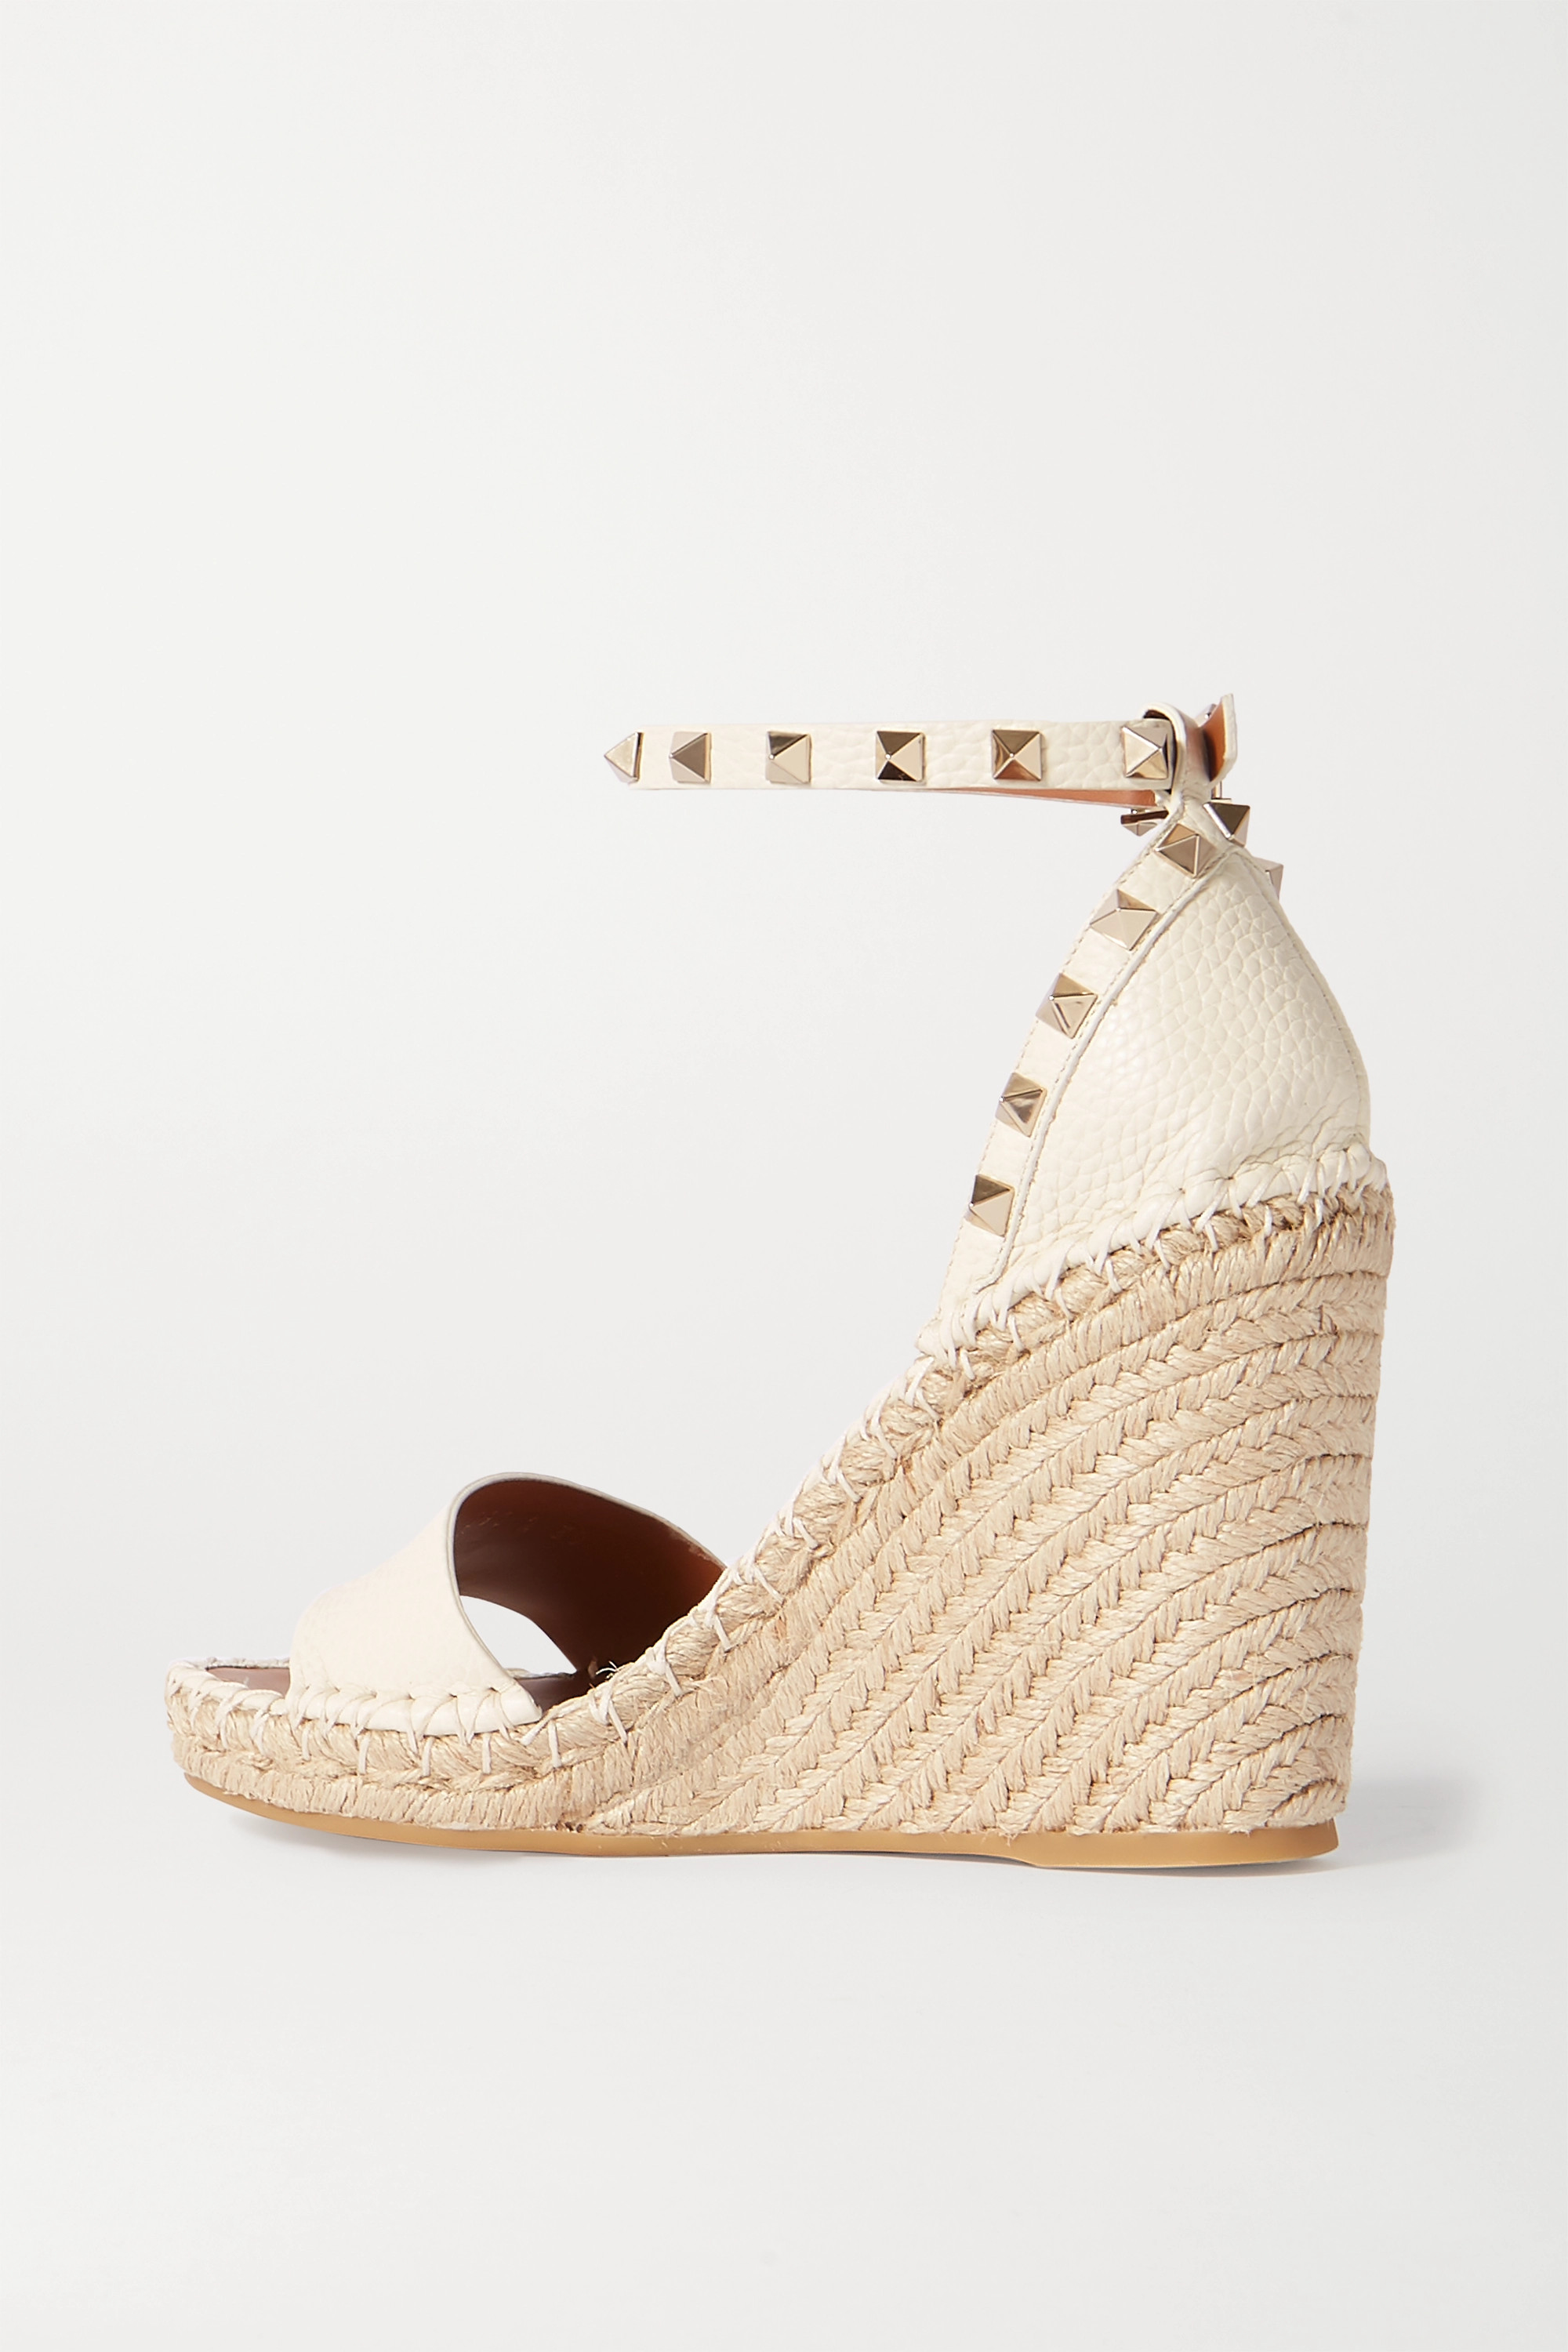 VALENTINO Valentino Garavani Rockstud 105 textured-leather espadrille wedge sandals